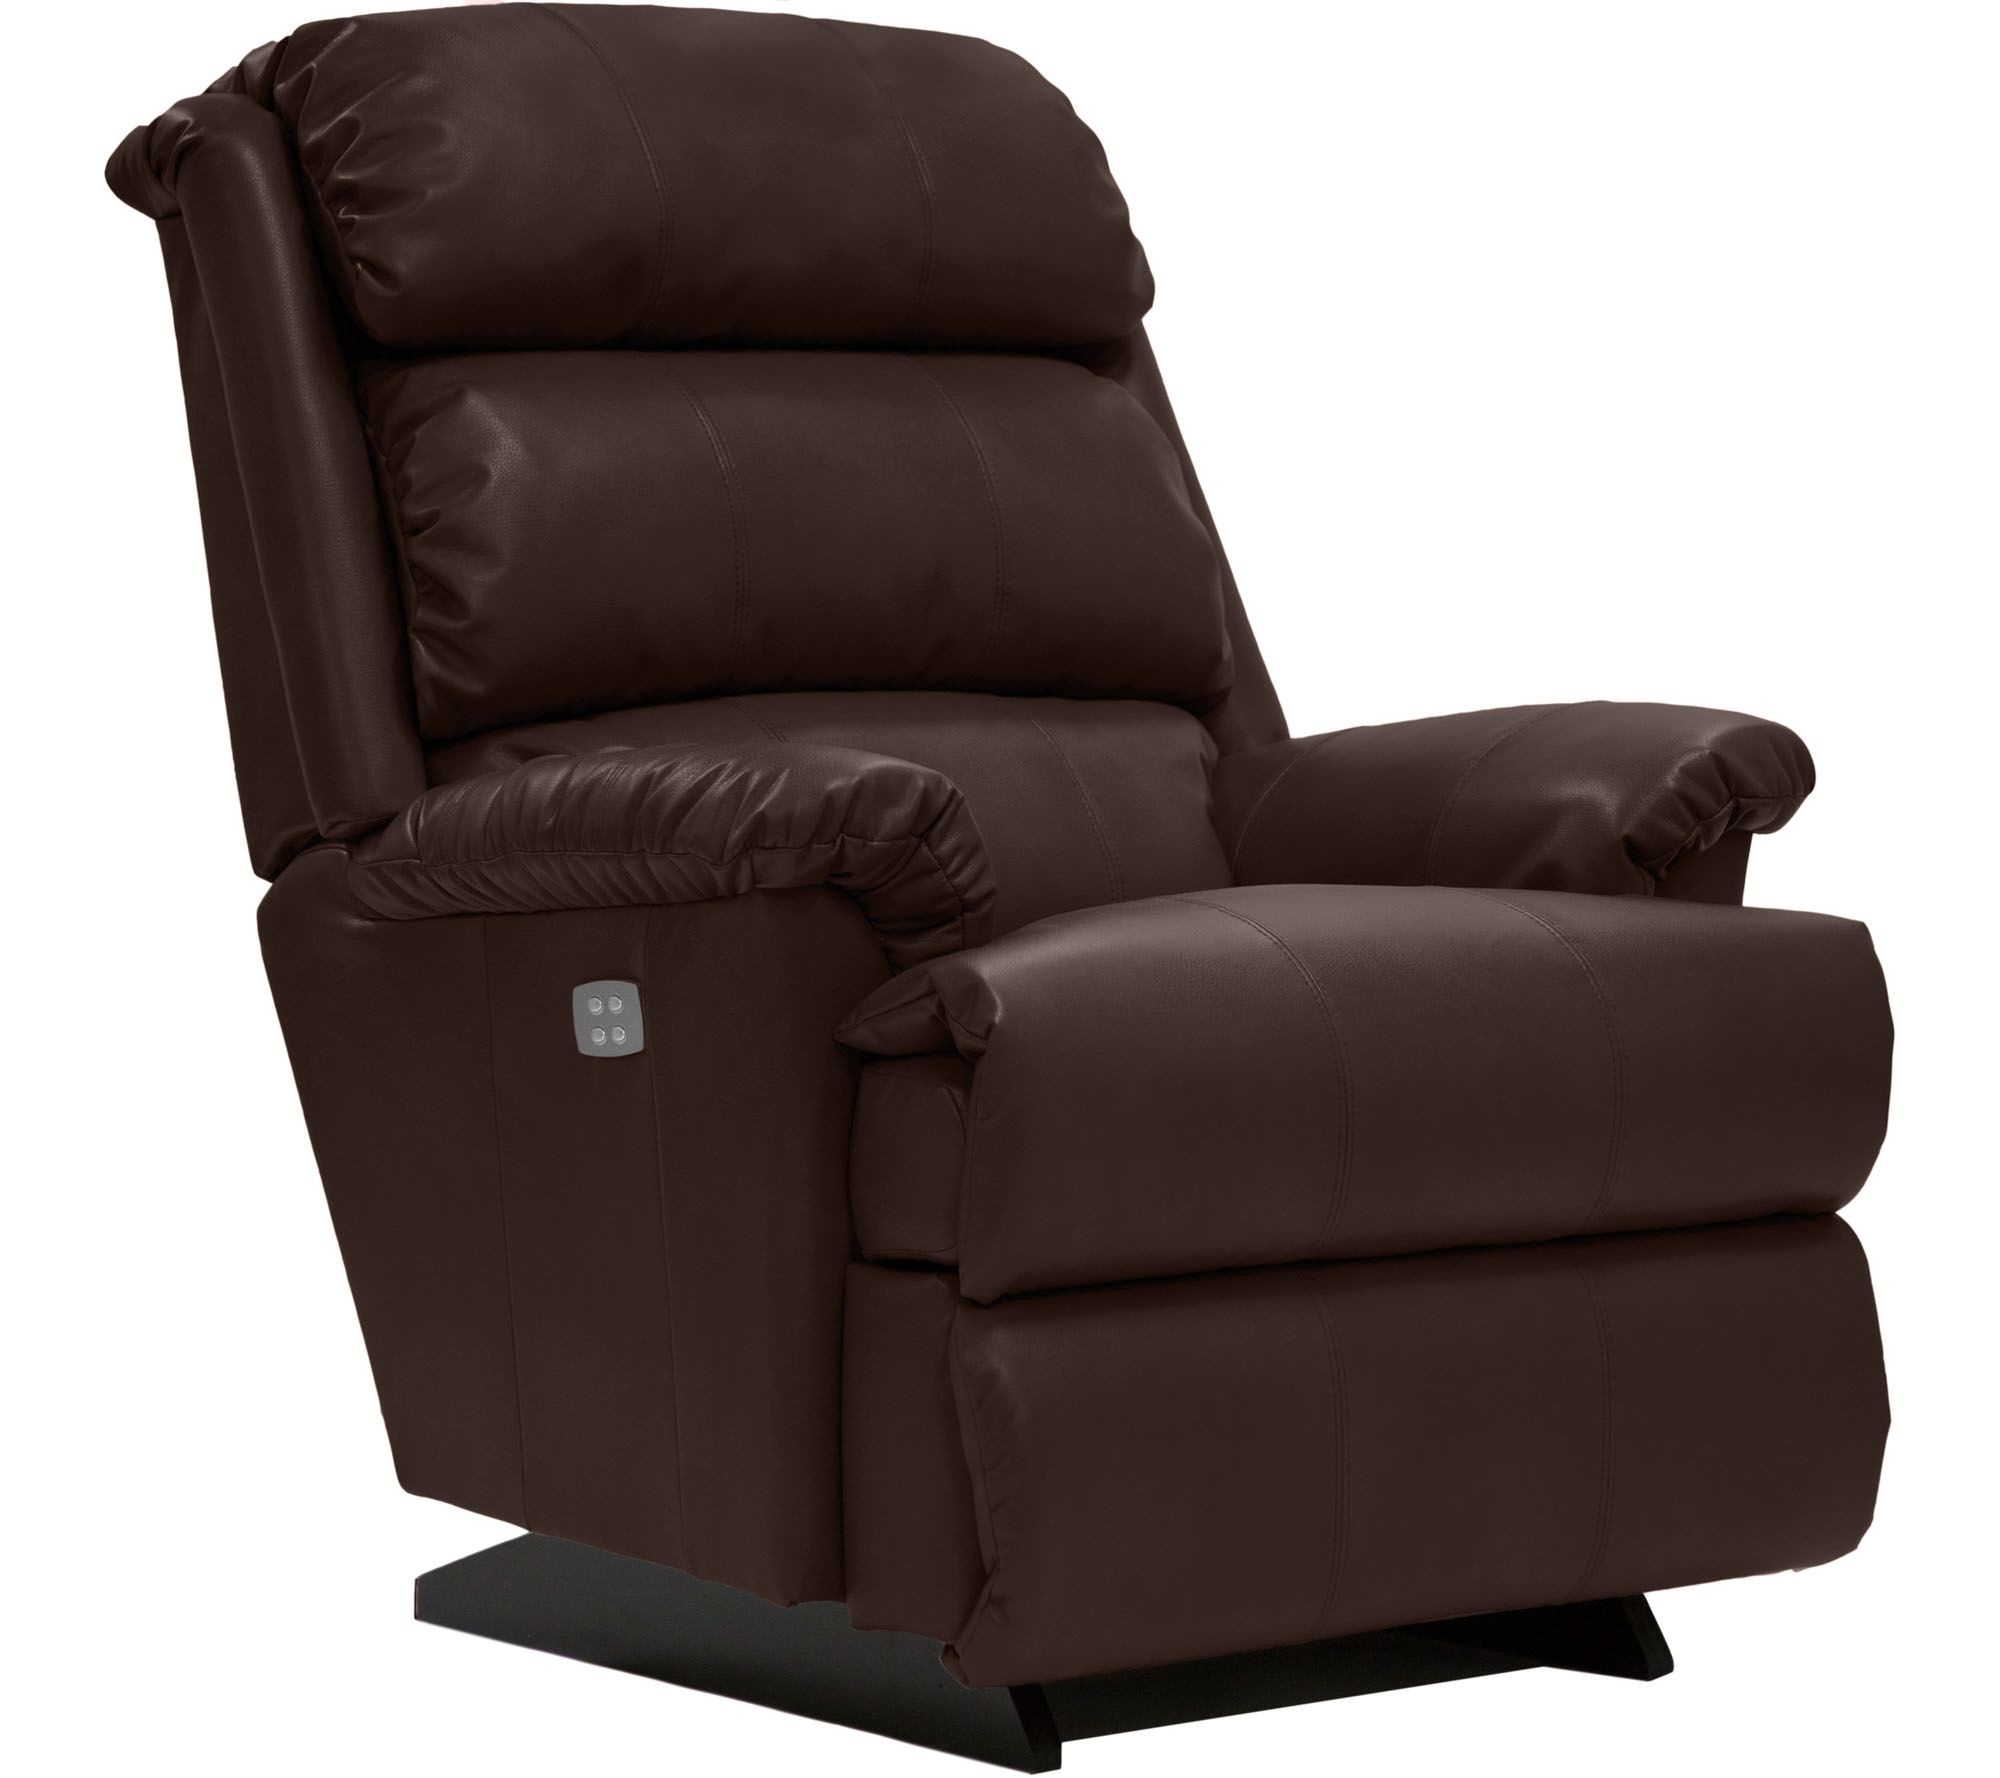 Marvelous Recliners Shimeks Furniture Manitowoc Wi Furniture For Sale Gmtry Best Dining Table And Chair Ideas Images Gmtryco